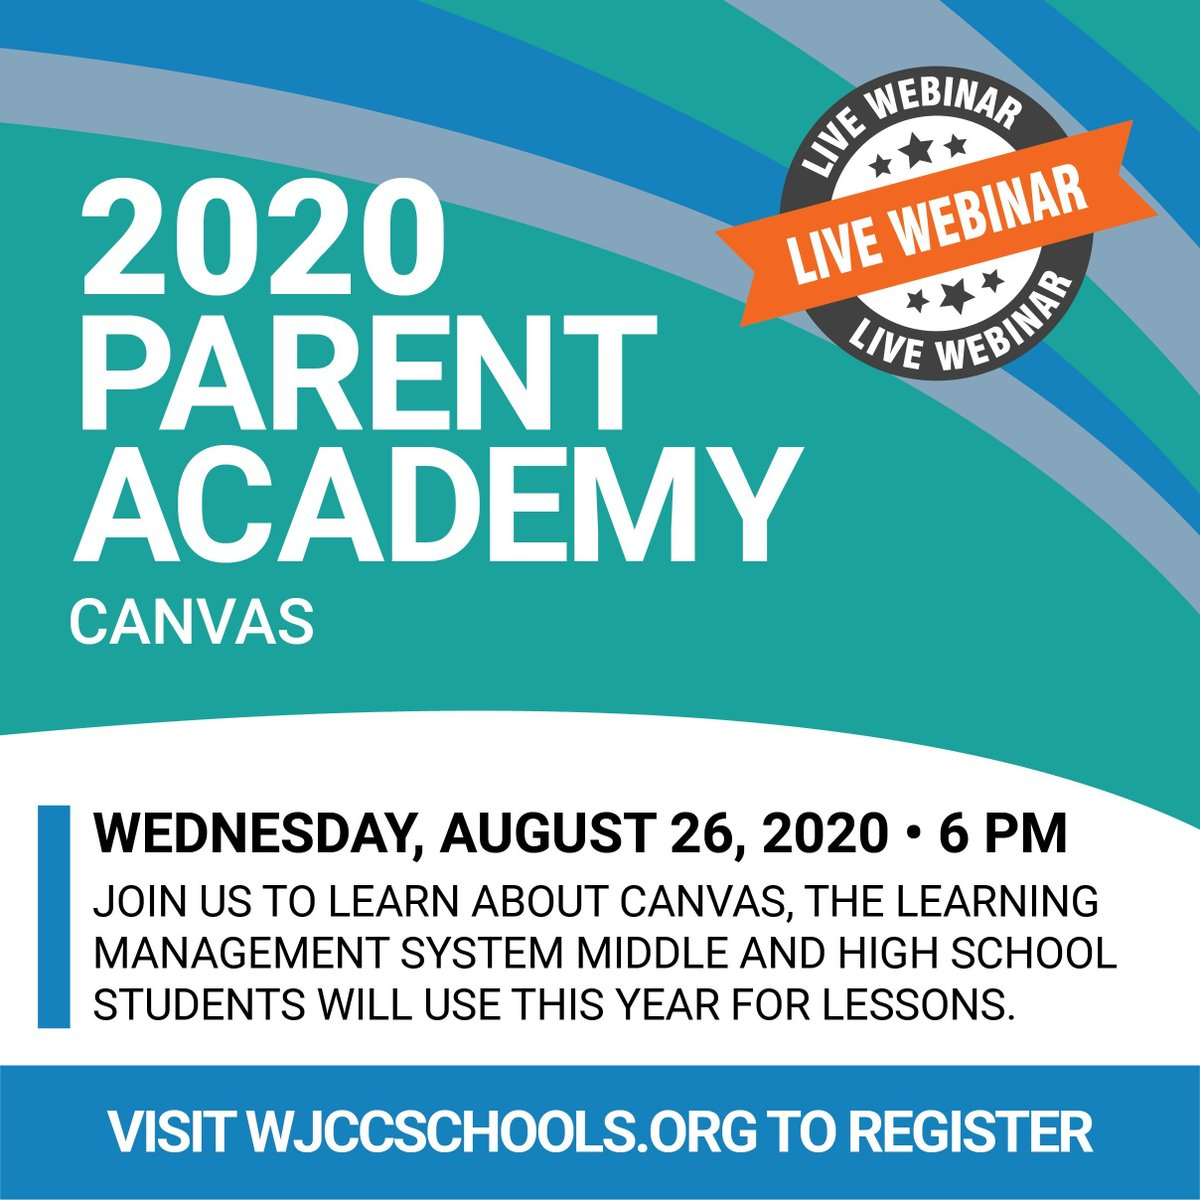 Register today to attend our very first Parent Academy Webinar on August 26 at 6PM. Tour Canvas and ask questions about the learning platform middle and high school students will use this fall. Register online today: